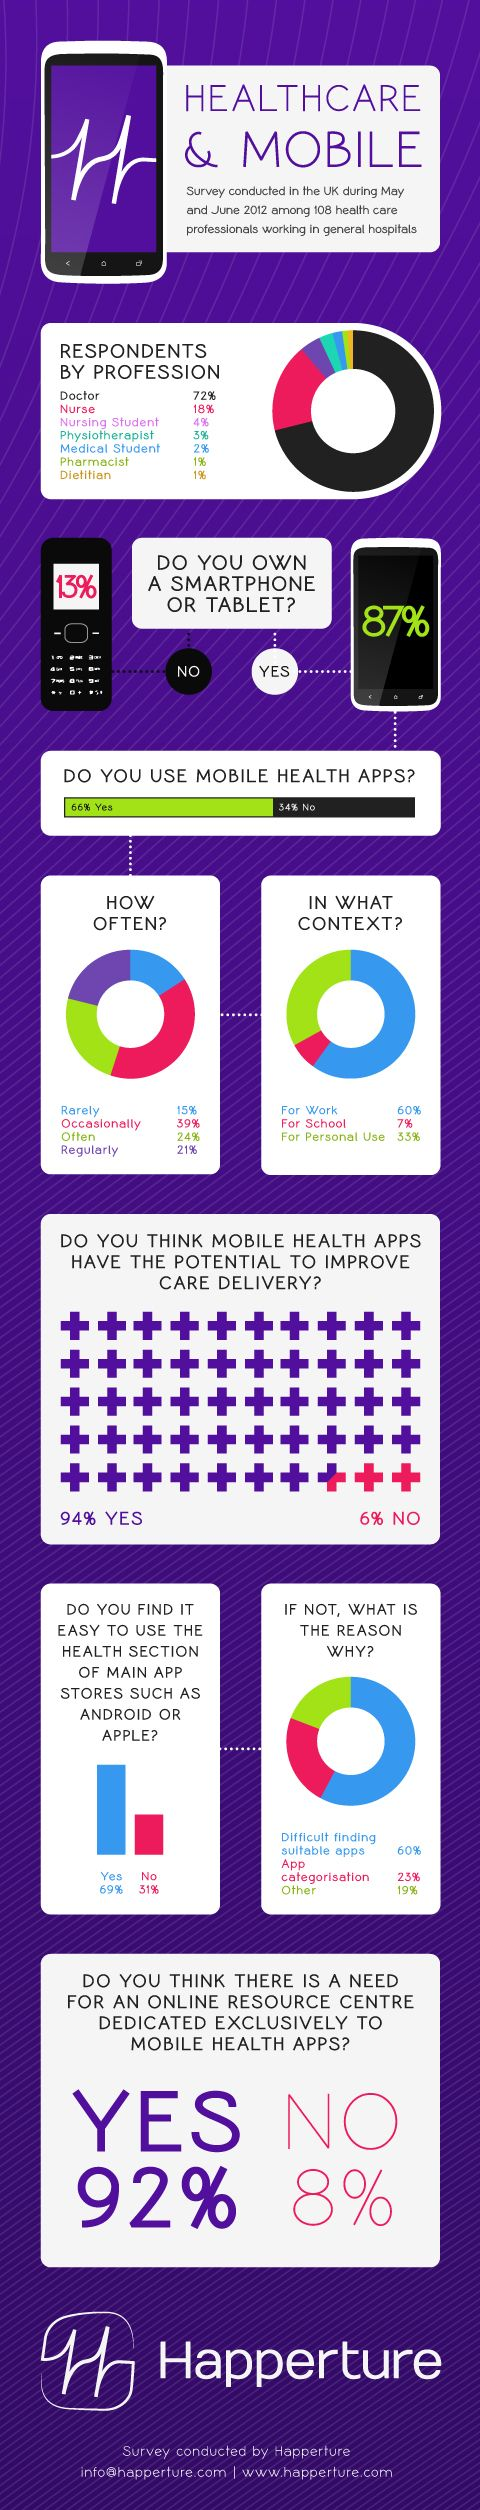 UK mobile usage survey amongst HCPs: 94% think medical apps will improve healthcare delivery #nhssm #hcsmuk